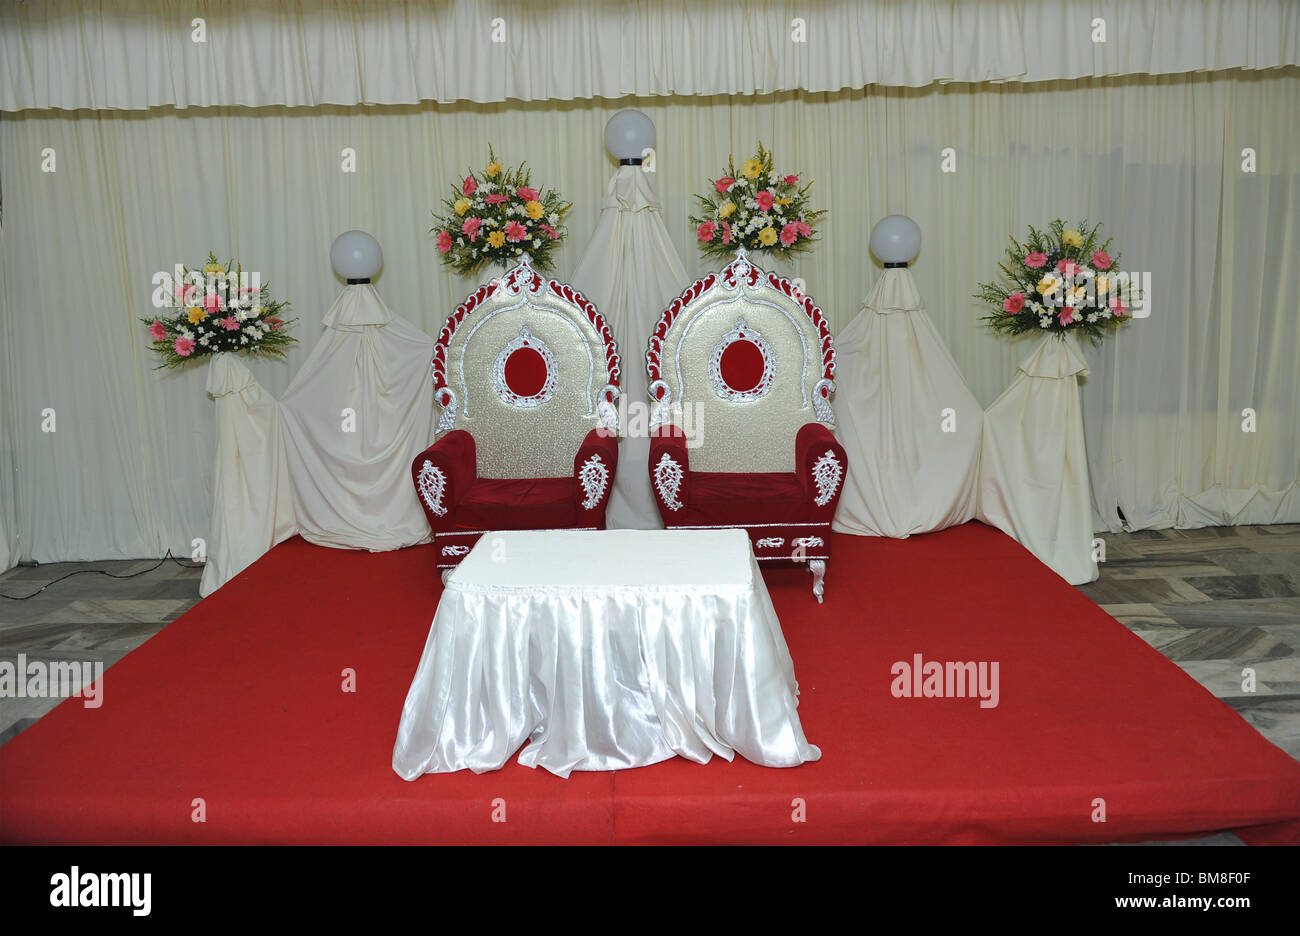 Reception Hall Decorations. marriage reception hall decorations with chairs Stock Photo